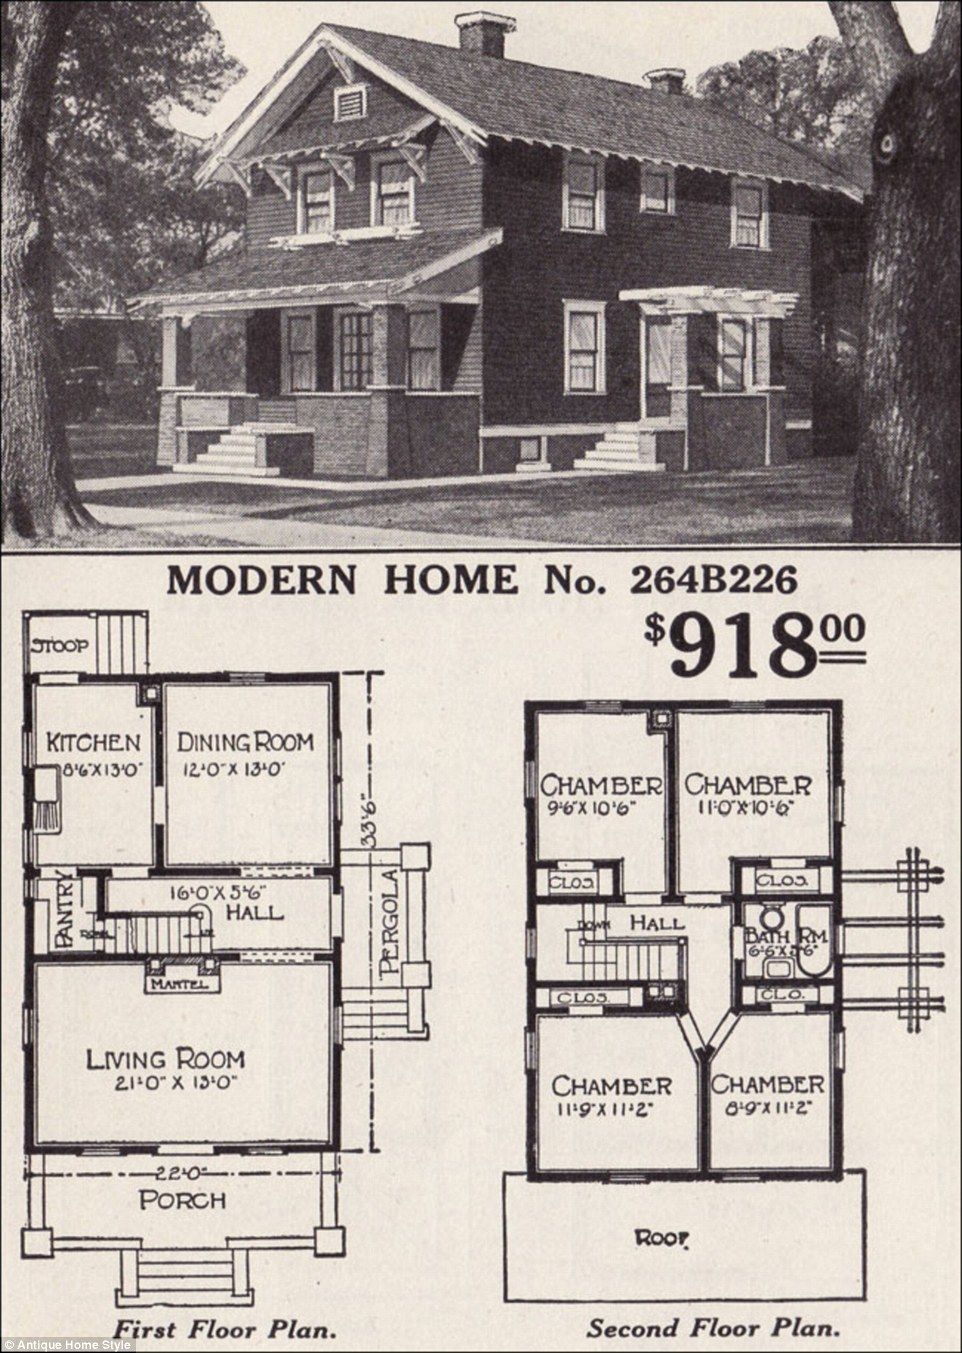 Build A House for 70000 Beautiful Man Restores His Grandparents 1916 Flat Pack Home From